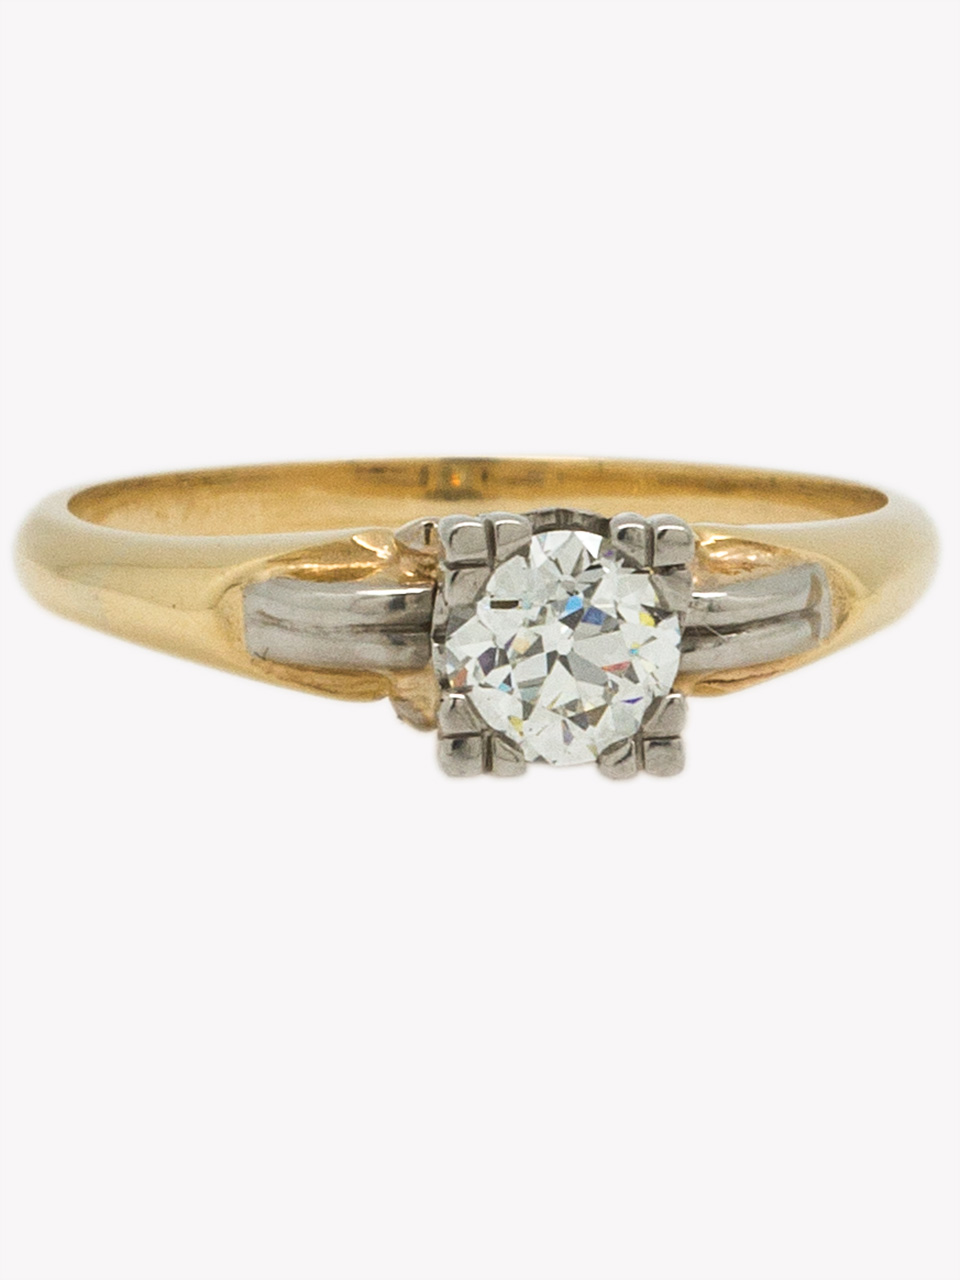 Vintage Solitaire Engagement Ring 14KY 0.43ct Old European Cut H-VS2 circa 1930s